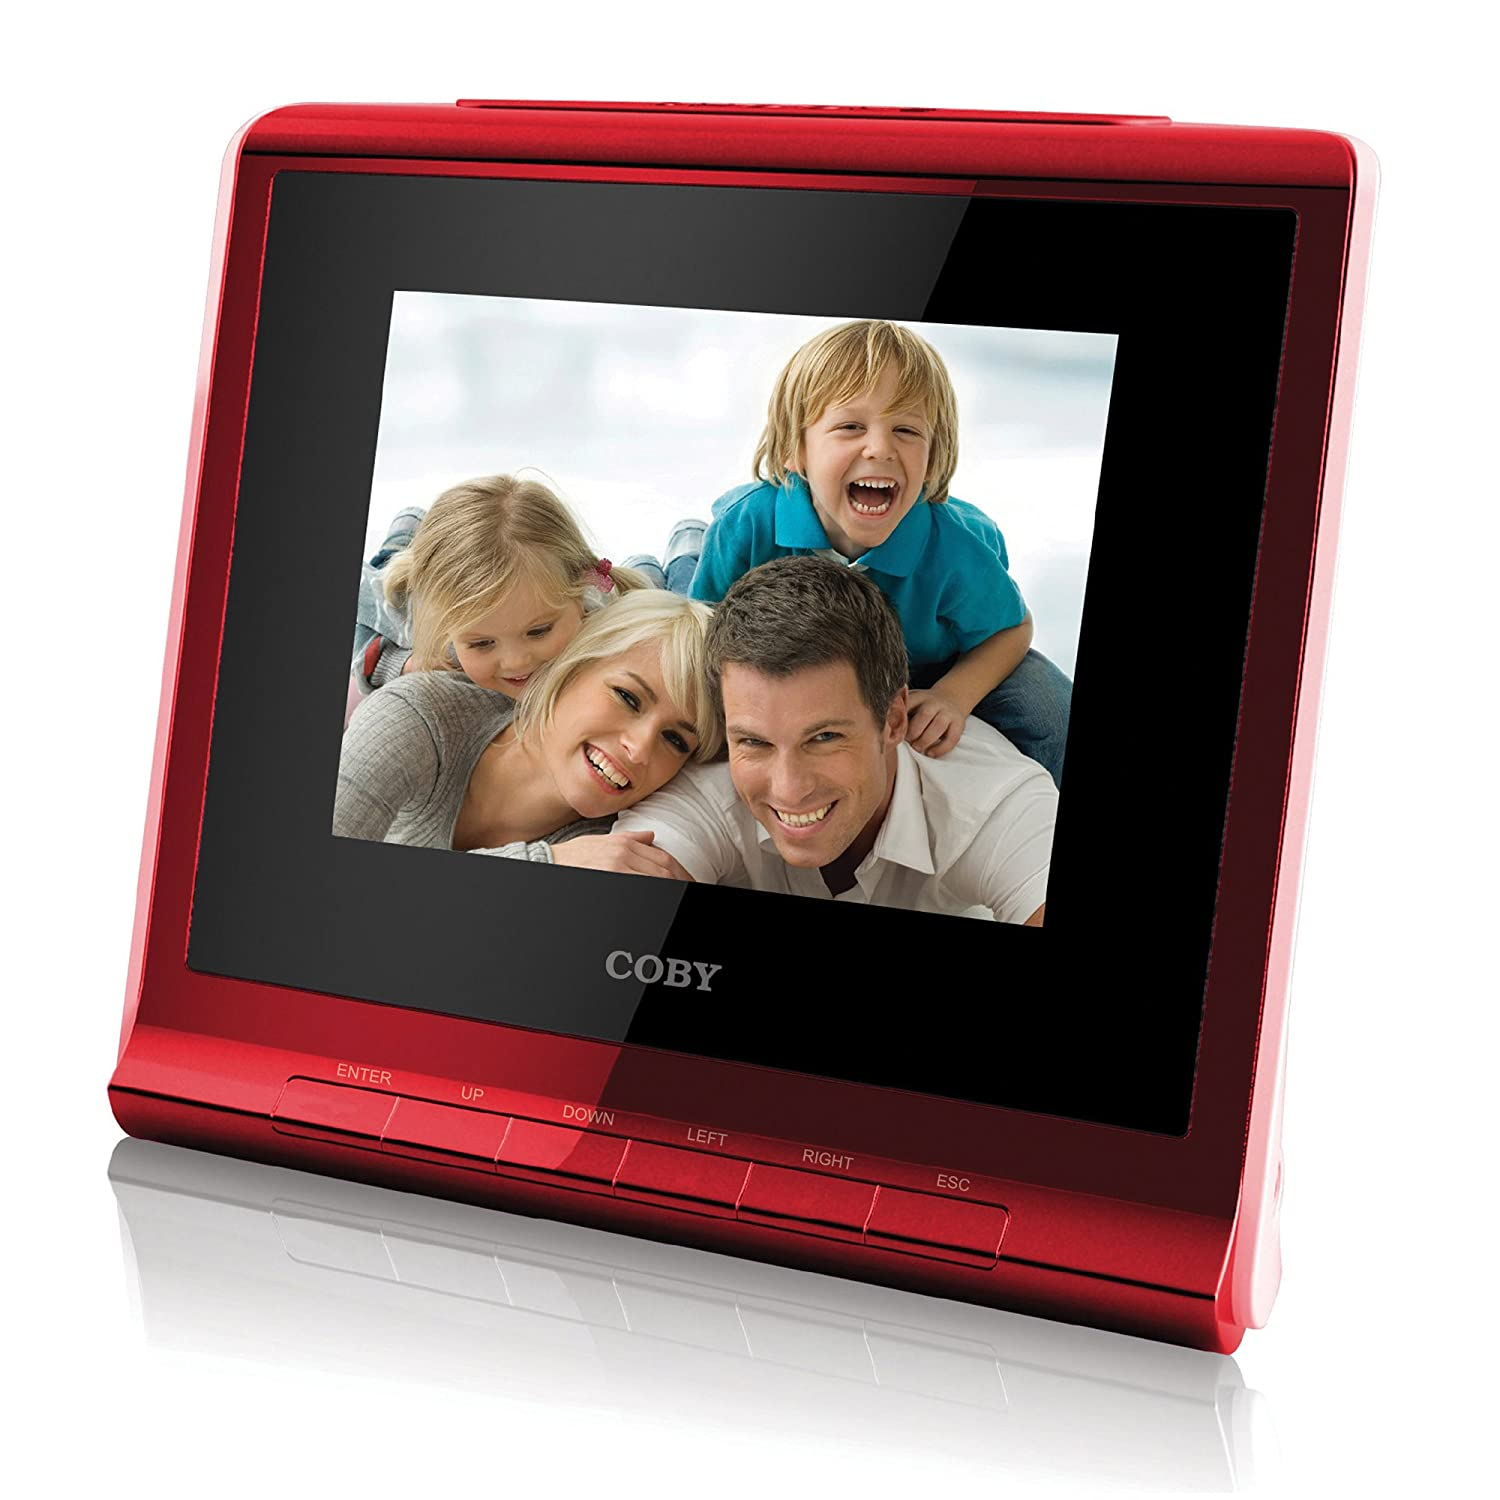 Coby DP356RED 3.5-Inch Digital Photo Frame with Alarm Clock, Red Coby Electronics - Canada